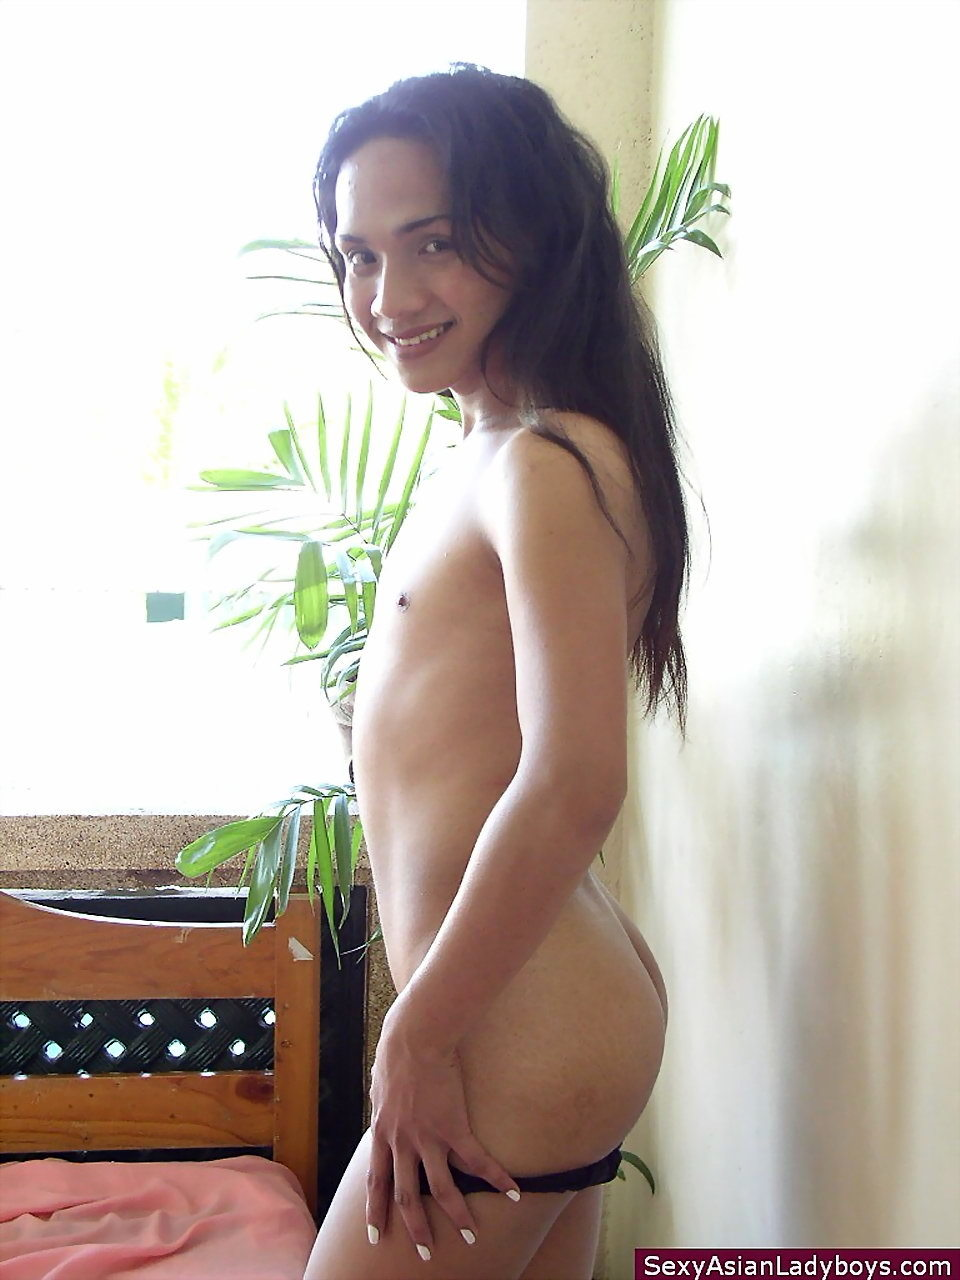 Tantalizing Thai TGirl Offering Her Assets To Get Laid